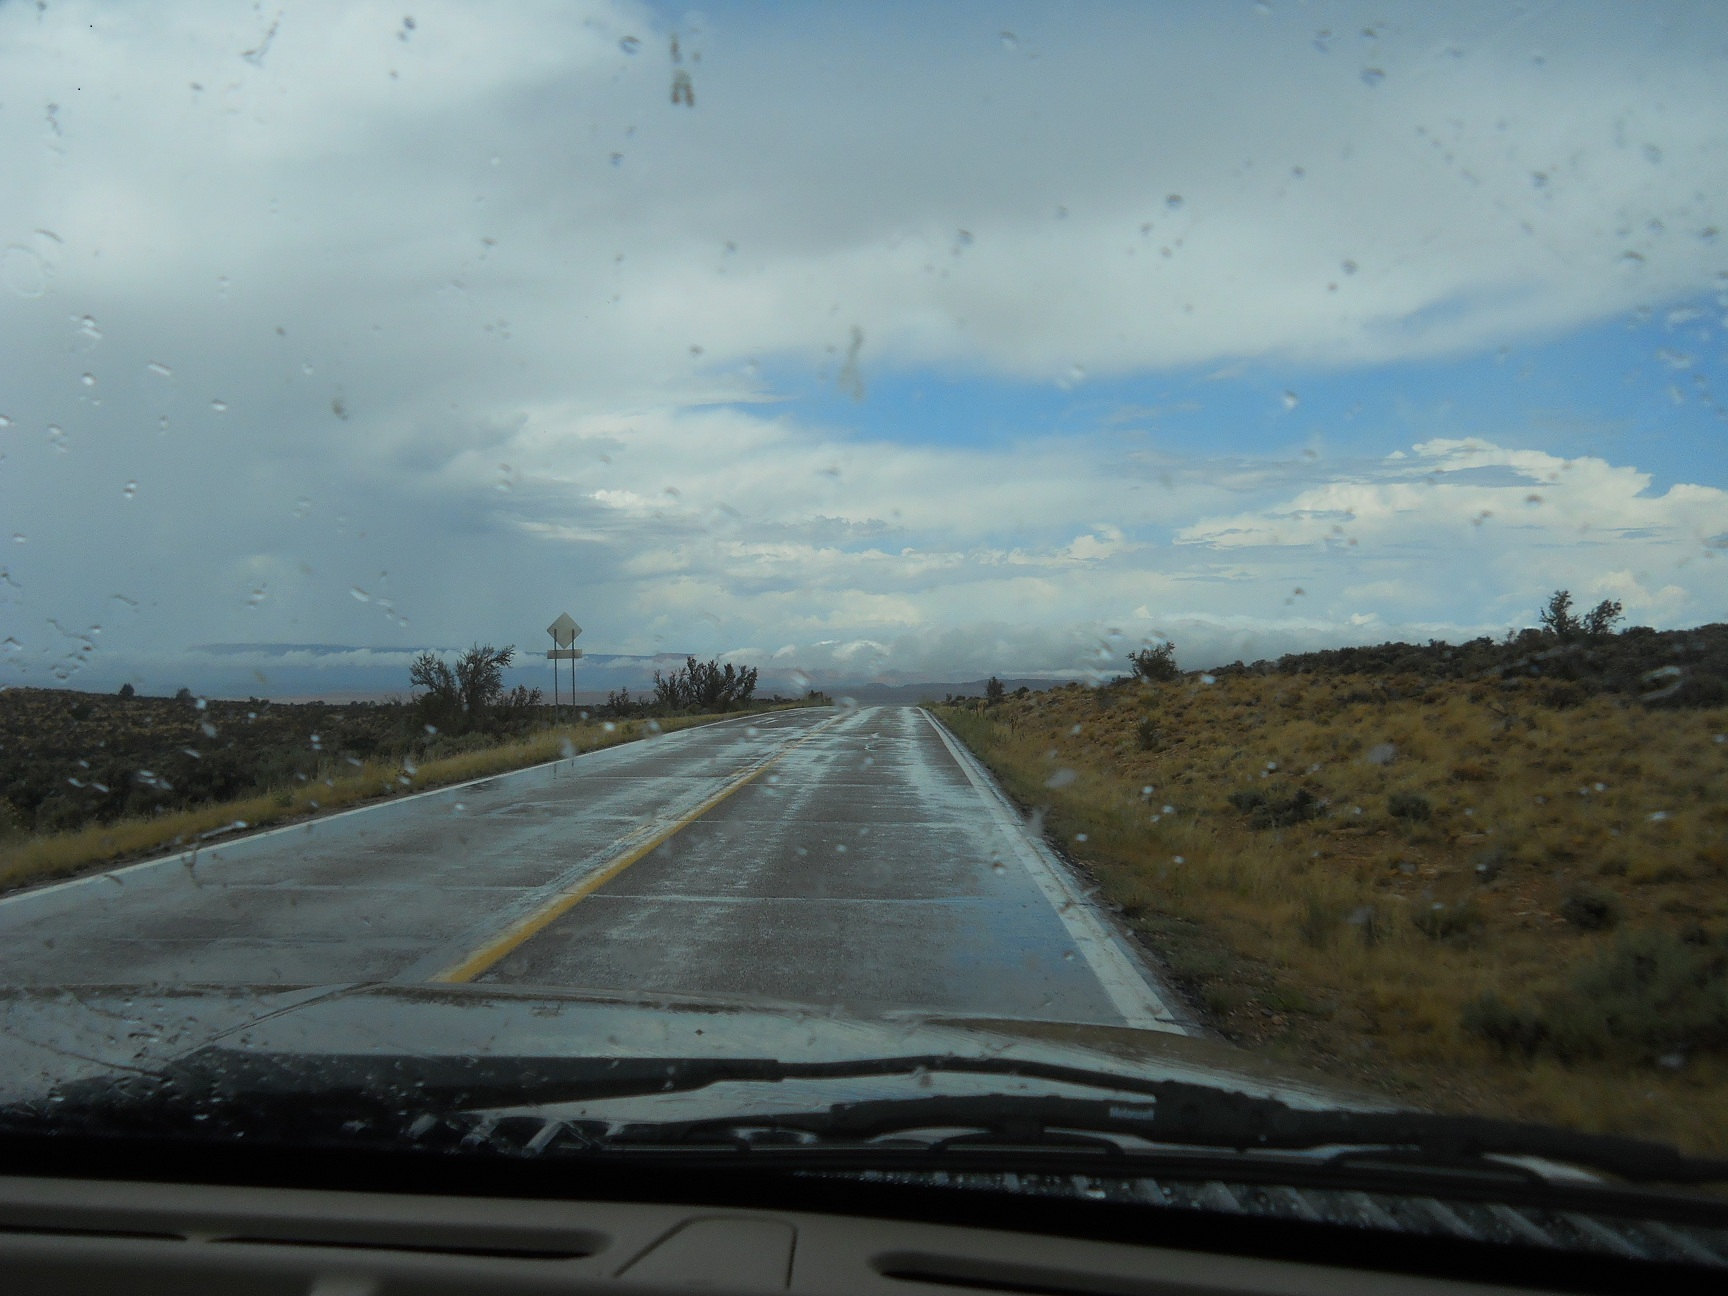 A Rainy Day Drive In The Desert